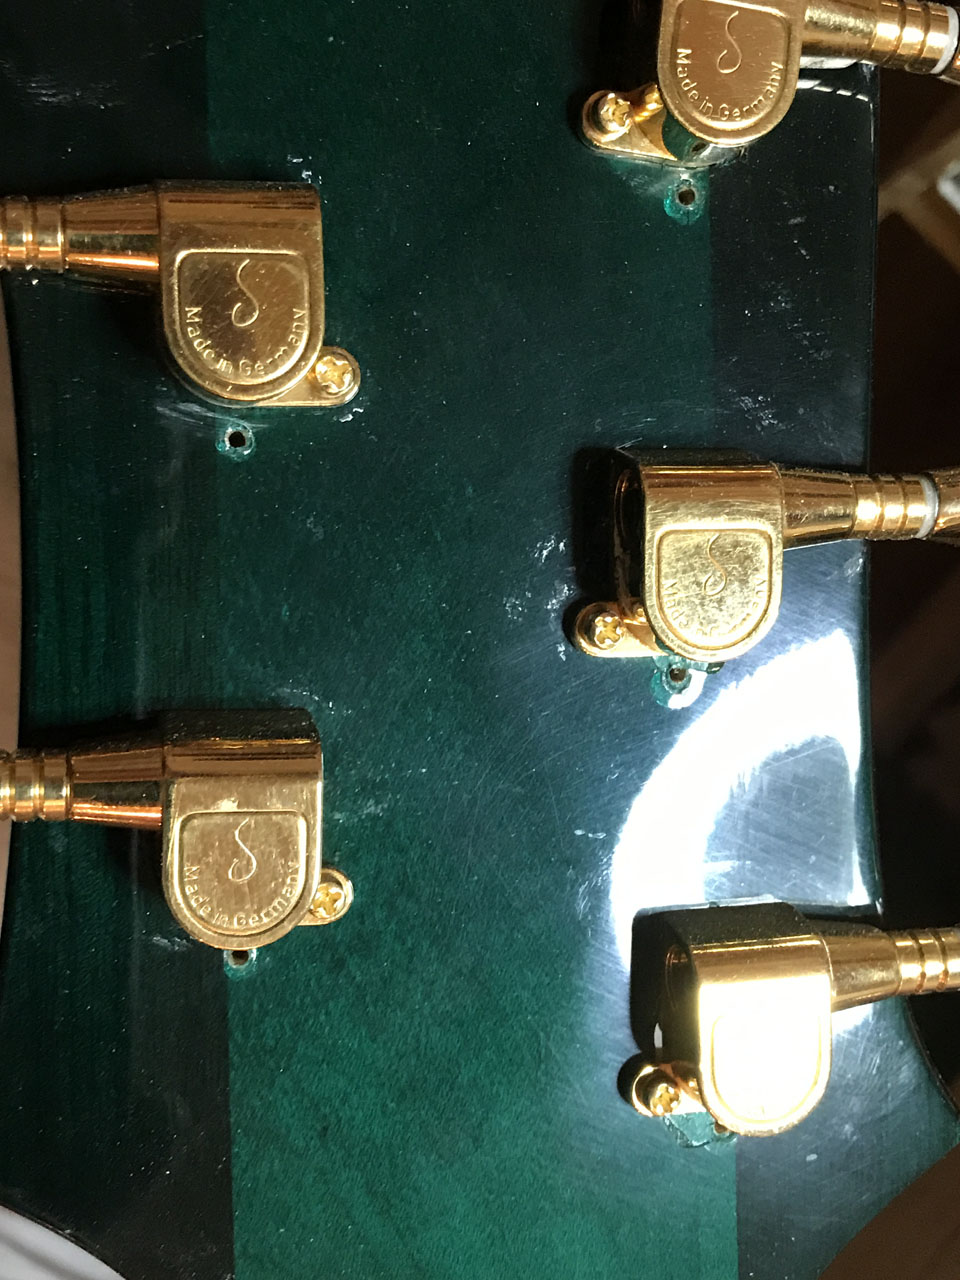 THERE WERE AN EXTRA SET OF SCREW HOLES FOR PREVIOUS INCORRECT TUNERS